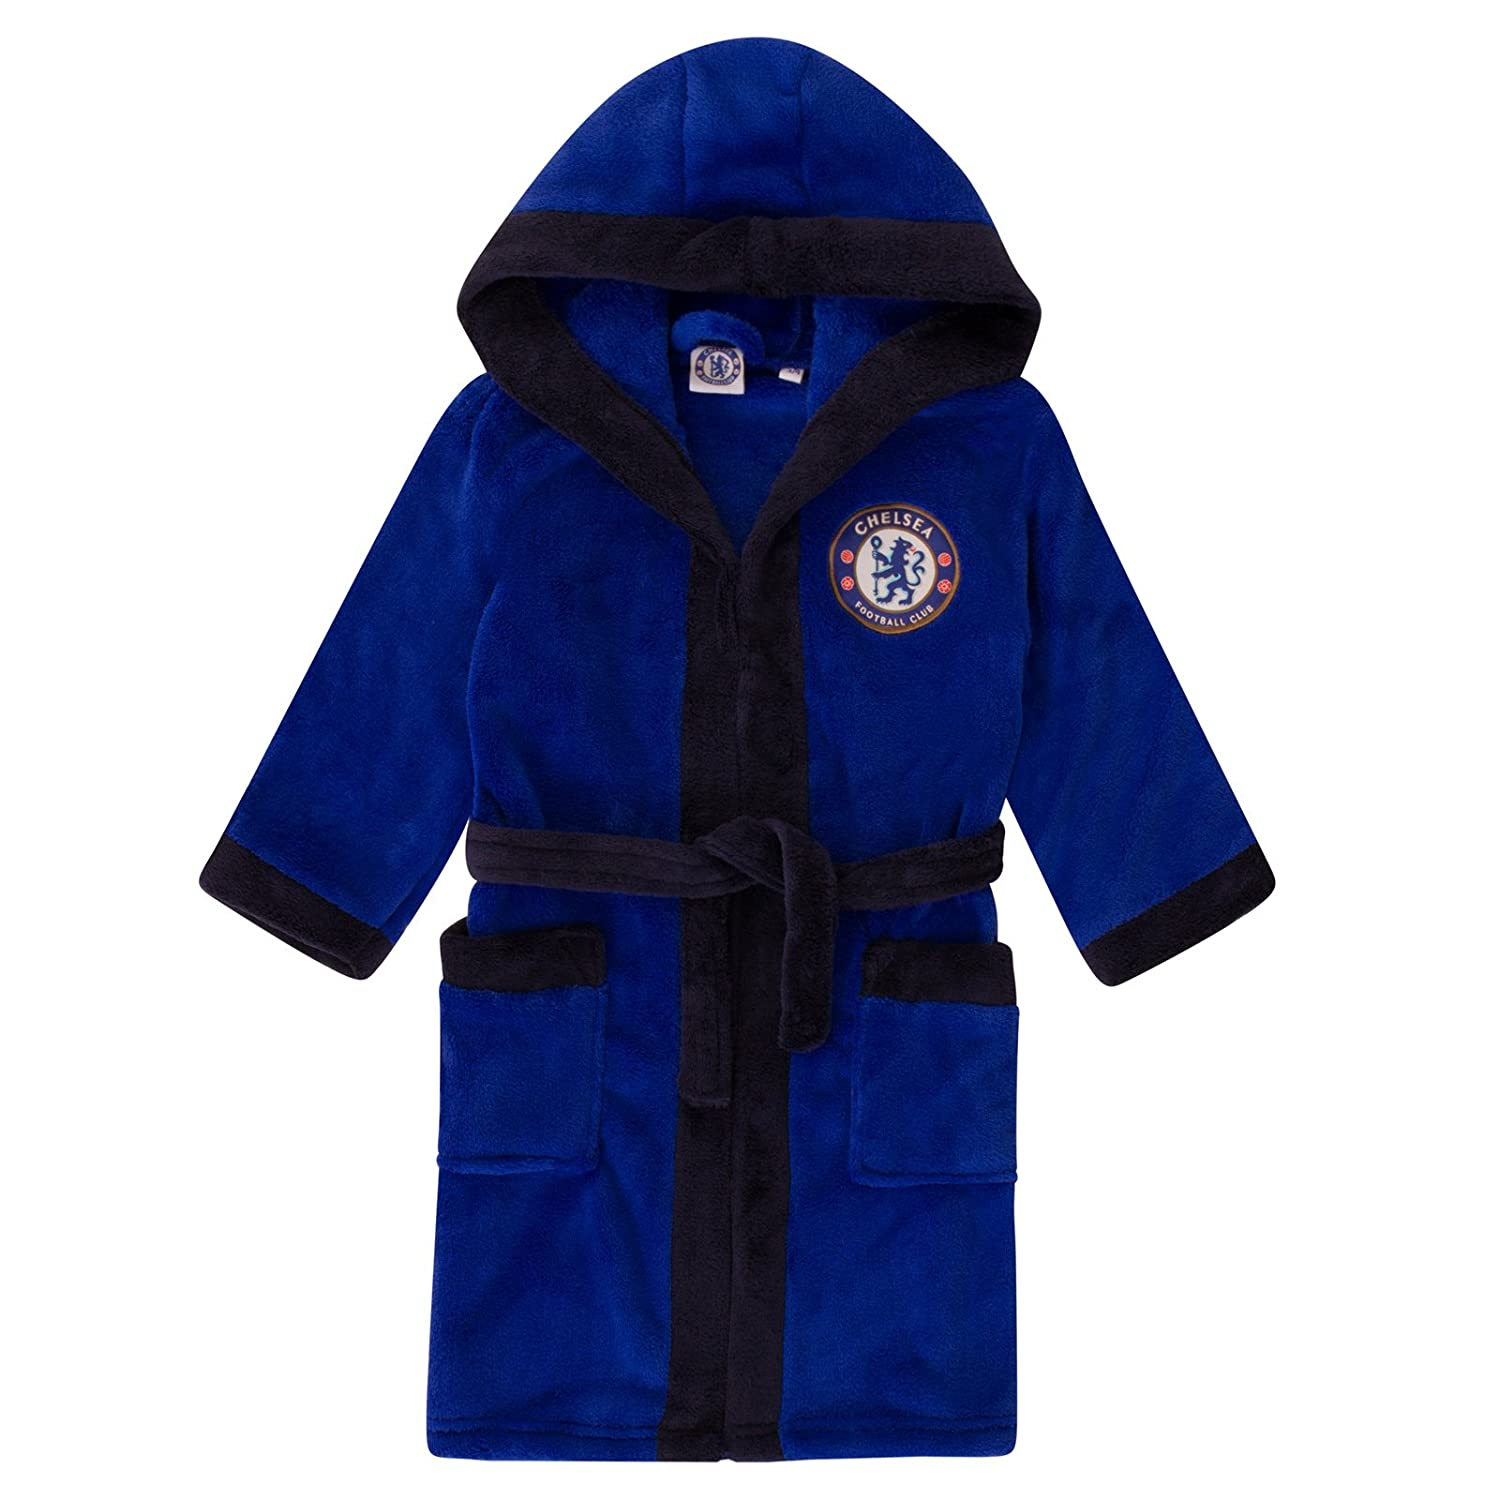 Chelsea FC Official Football Gift Boys Hooded Fleece Dressing Gown Robe